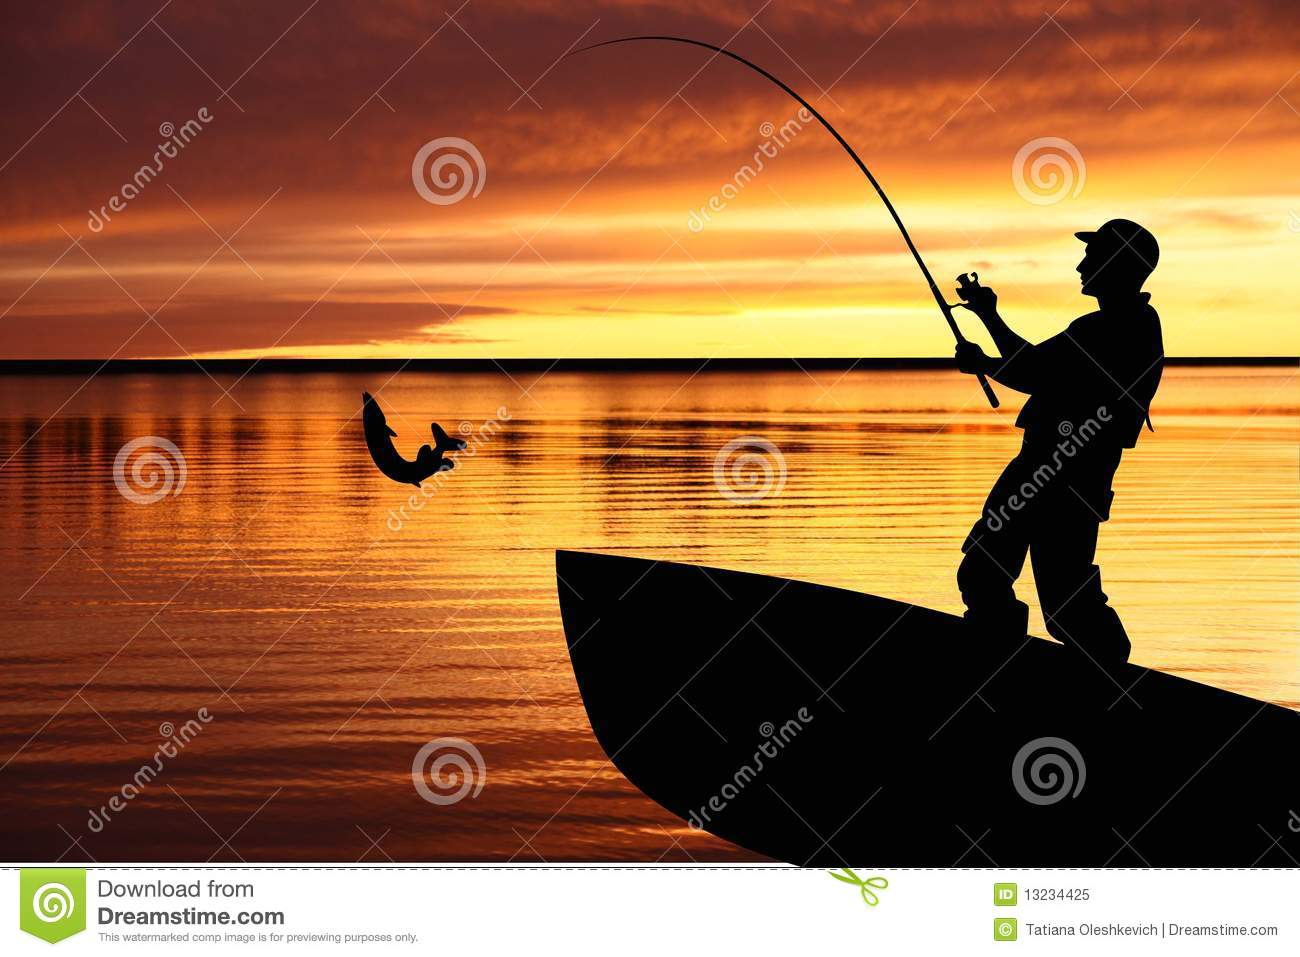 Fishing Boat And Fisherman With Catching Pike Royalty Free Stock Photo ...